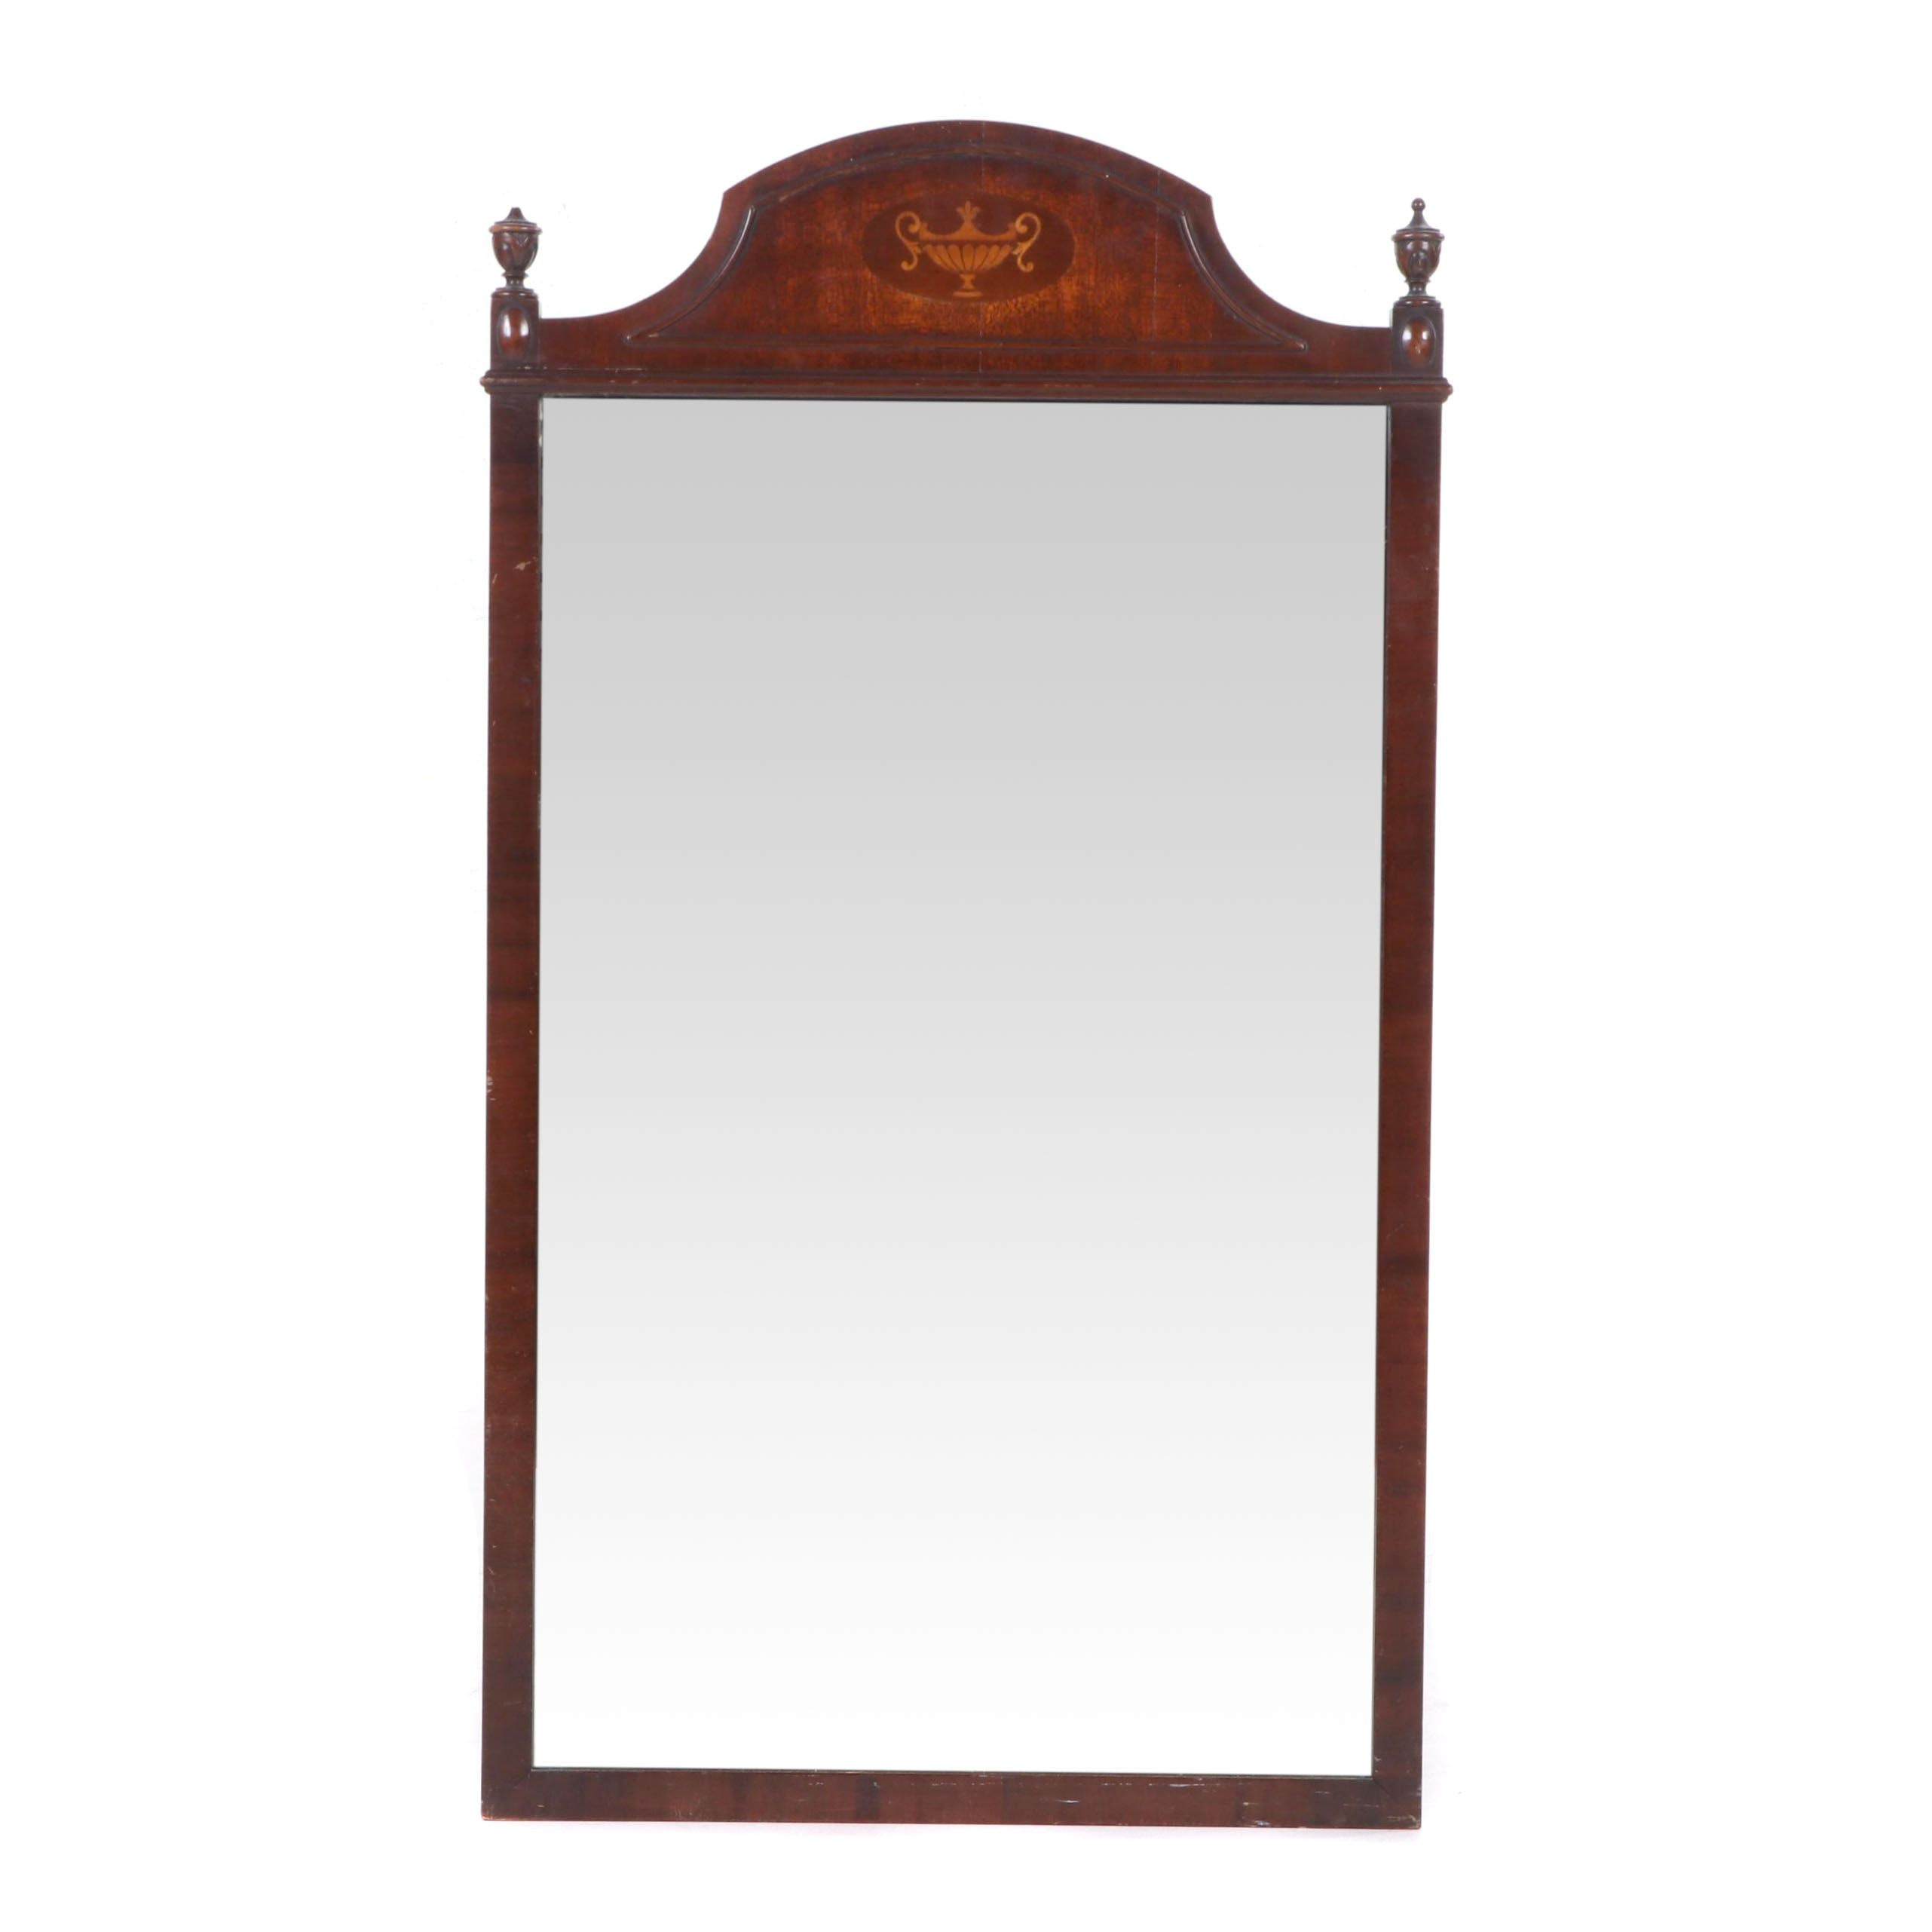 Mahogany Framed Wall Mirror Attributed to Steckler, Early 20th Century